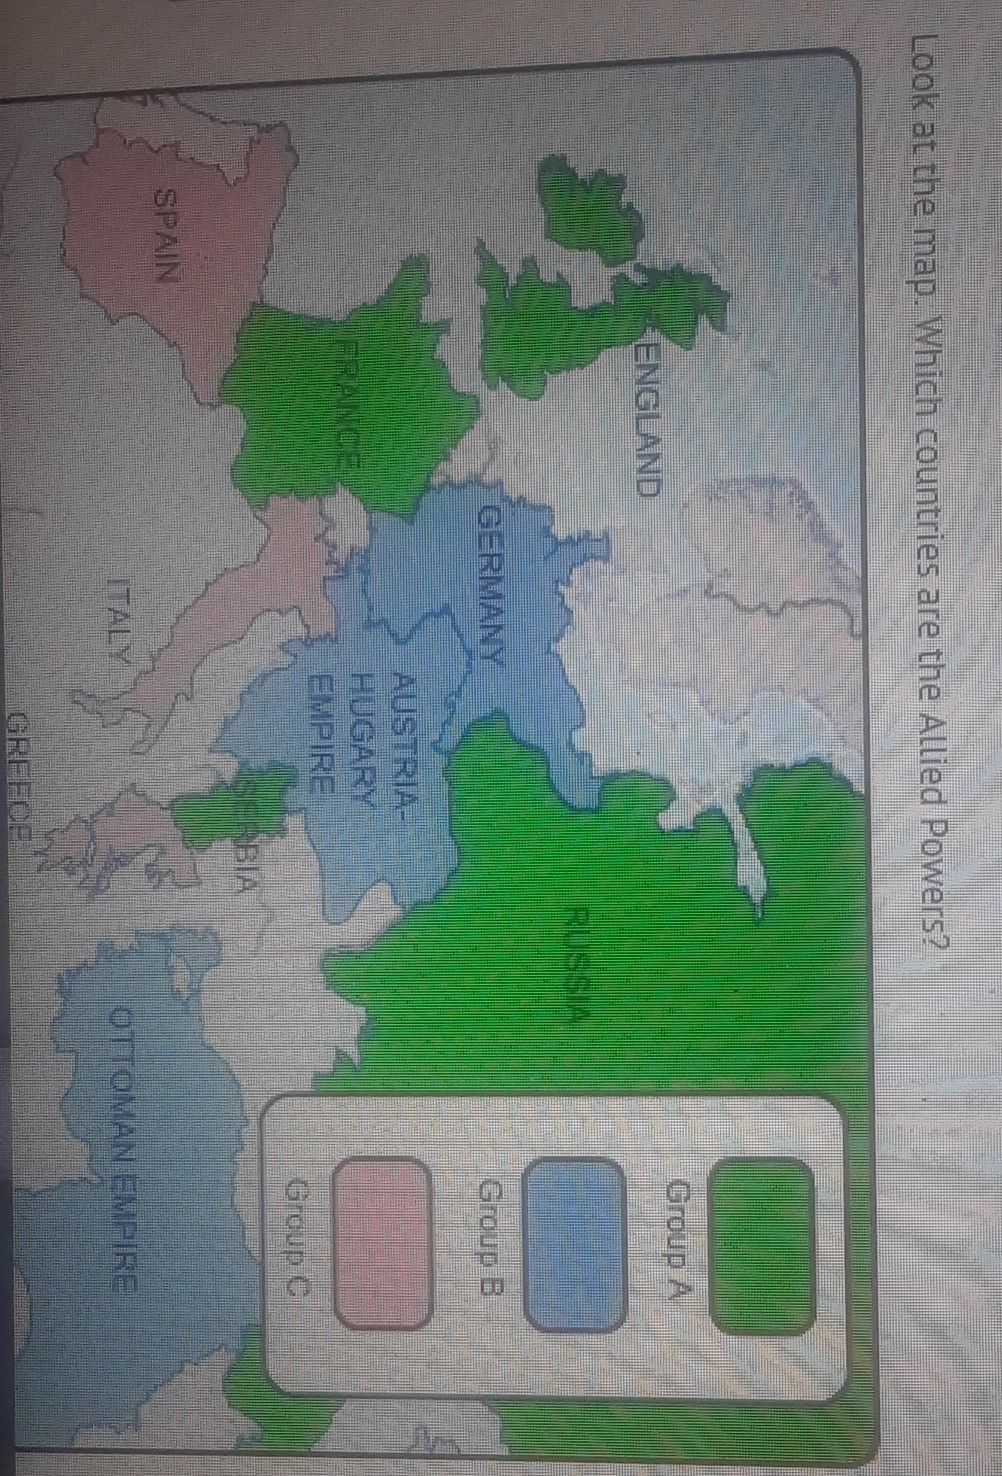 Picture of: Look At This Map Which Countries Are The Allied Powers Group A England France Russia Serbiagroup Brainly Com